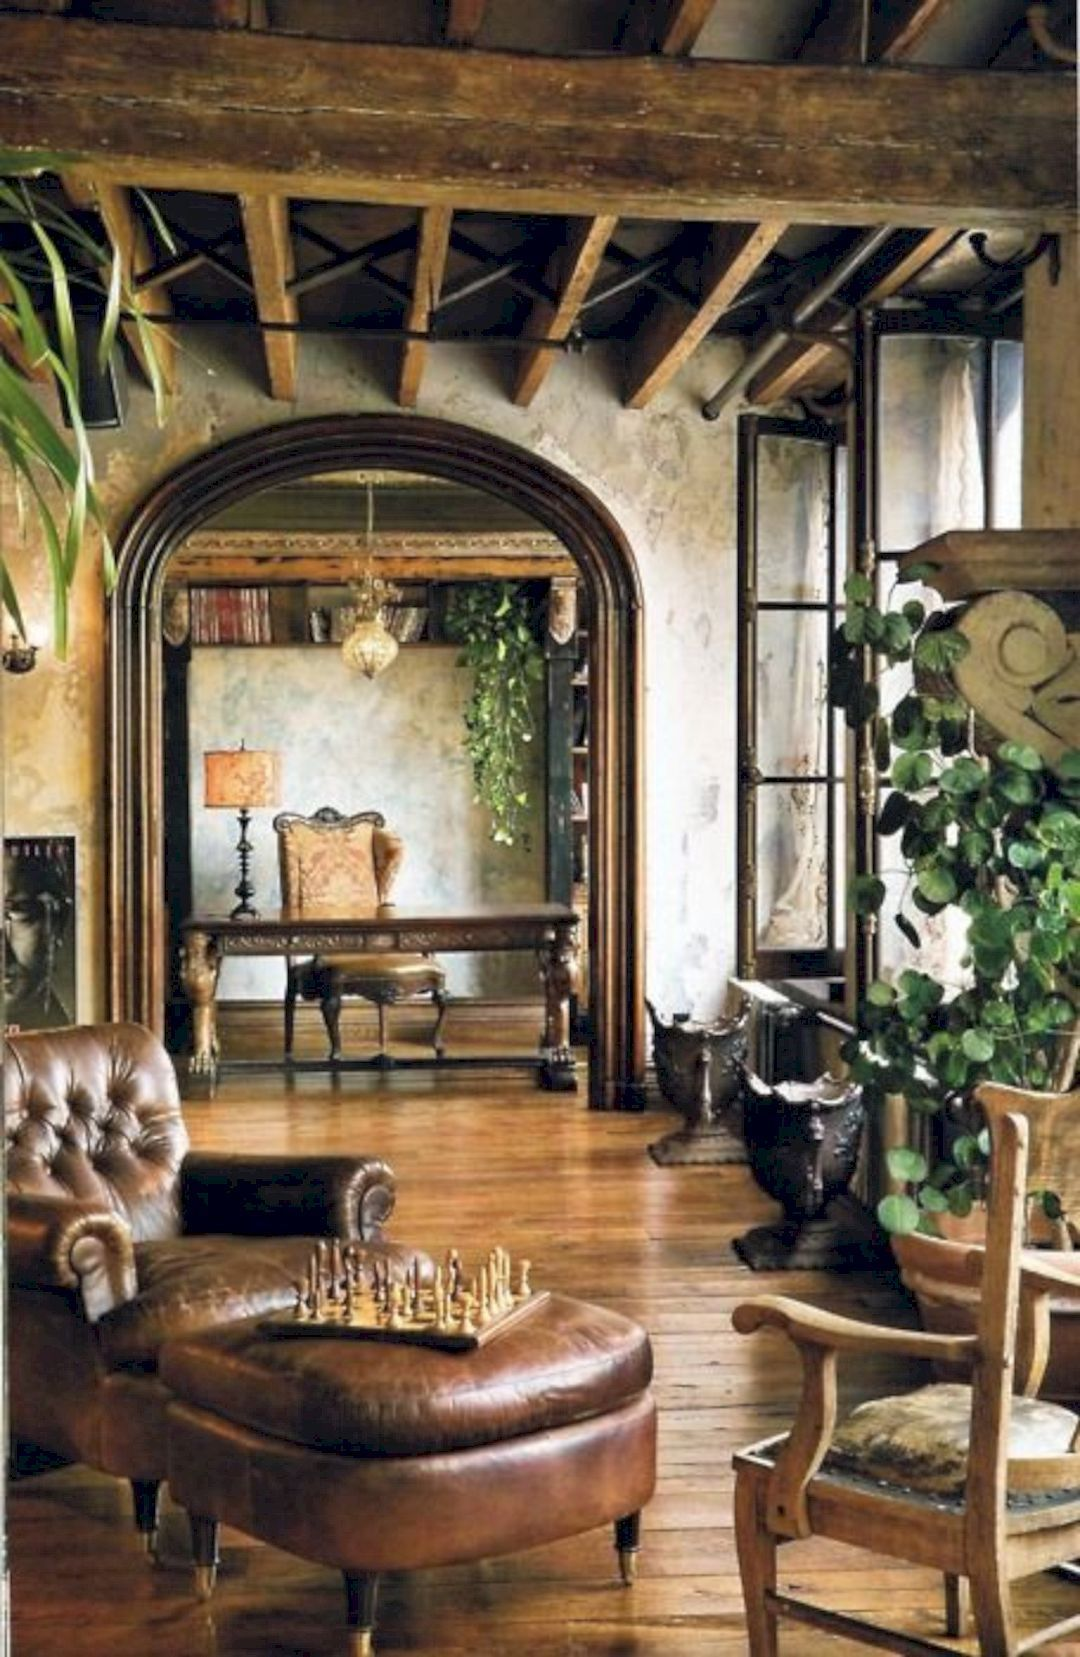 16 Classic Old World Interior Design Ideas With Images Interior Design Rustic